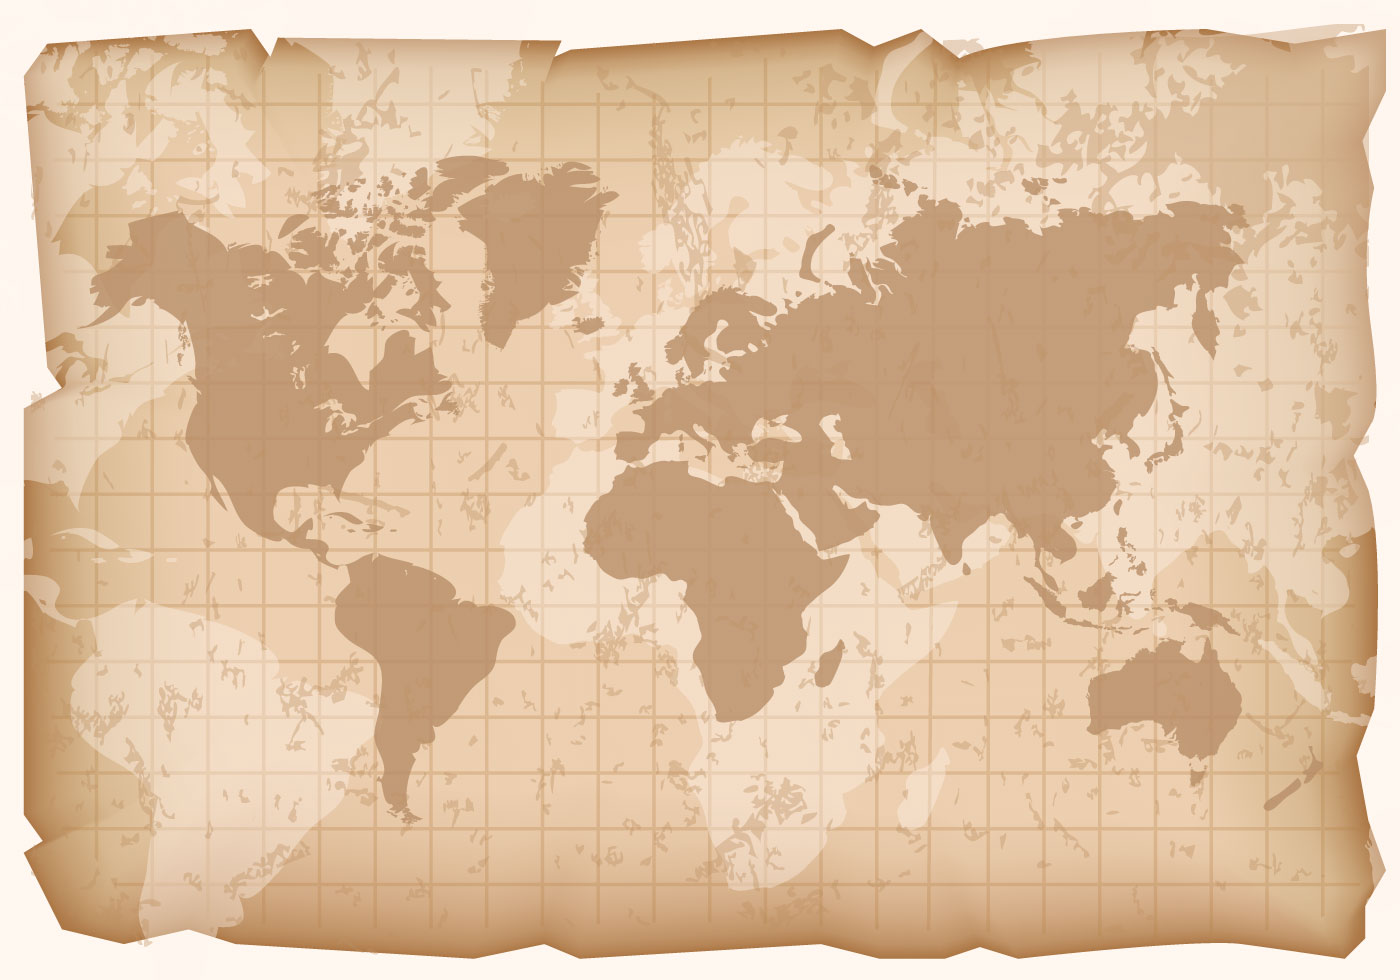 Vintage World Map Vector Download Free Vector Art Stock